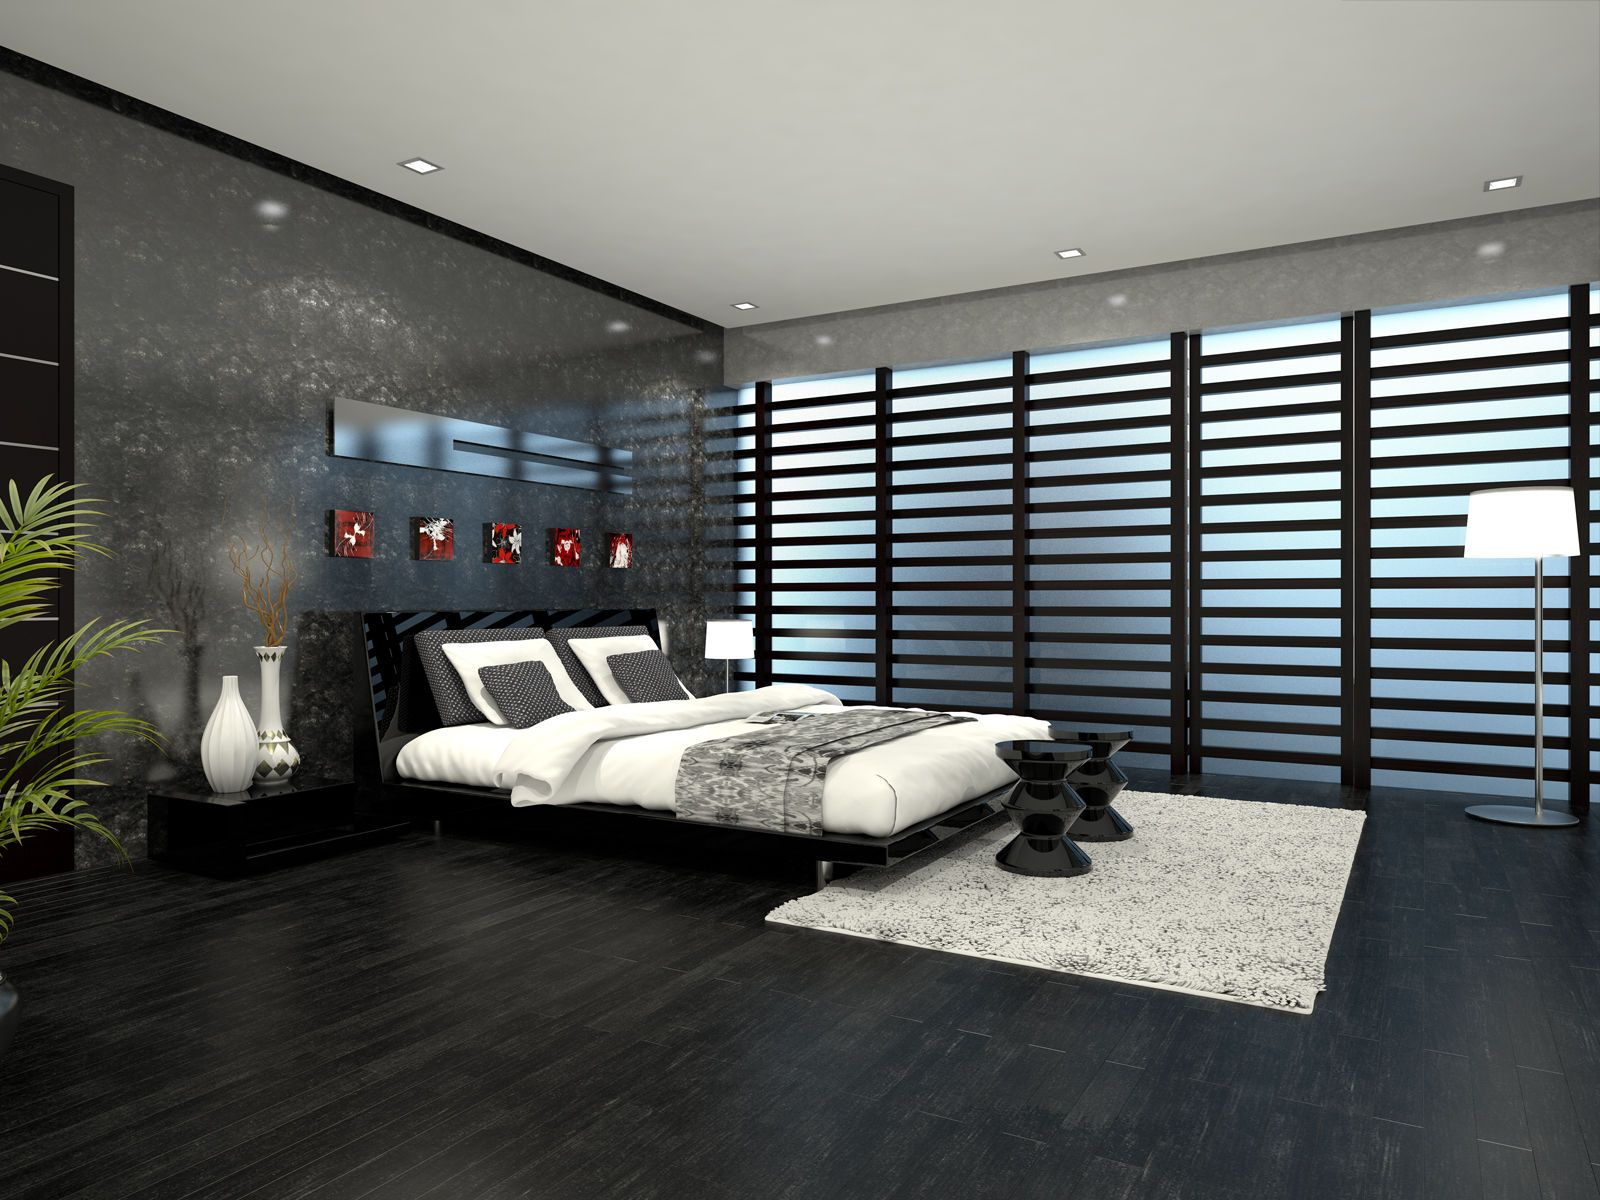 3d Model Interior Design Free Download Interior Design Interior Bedroom Design